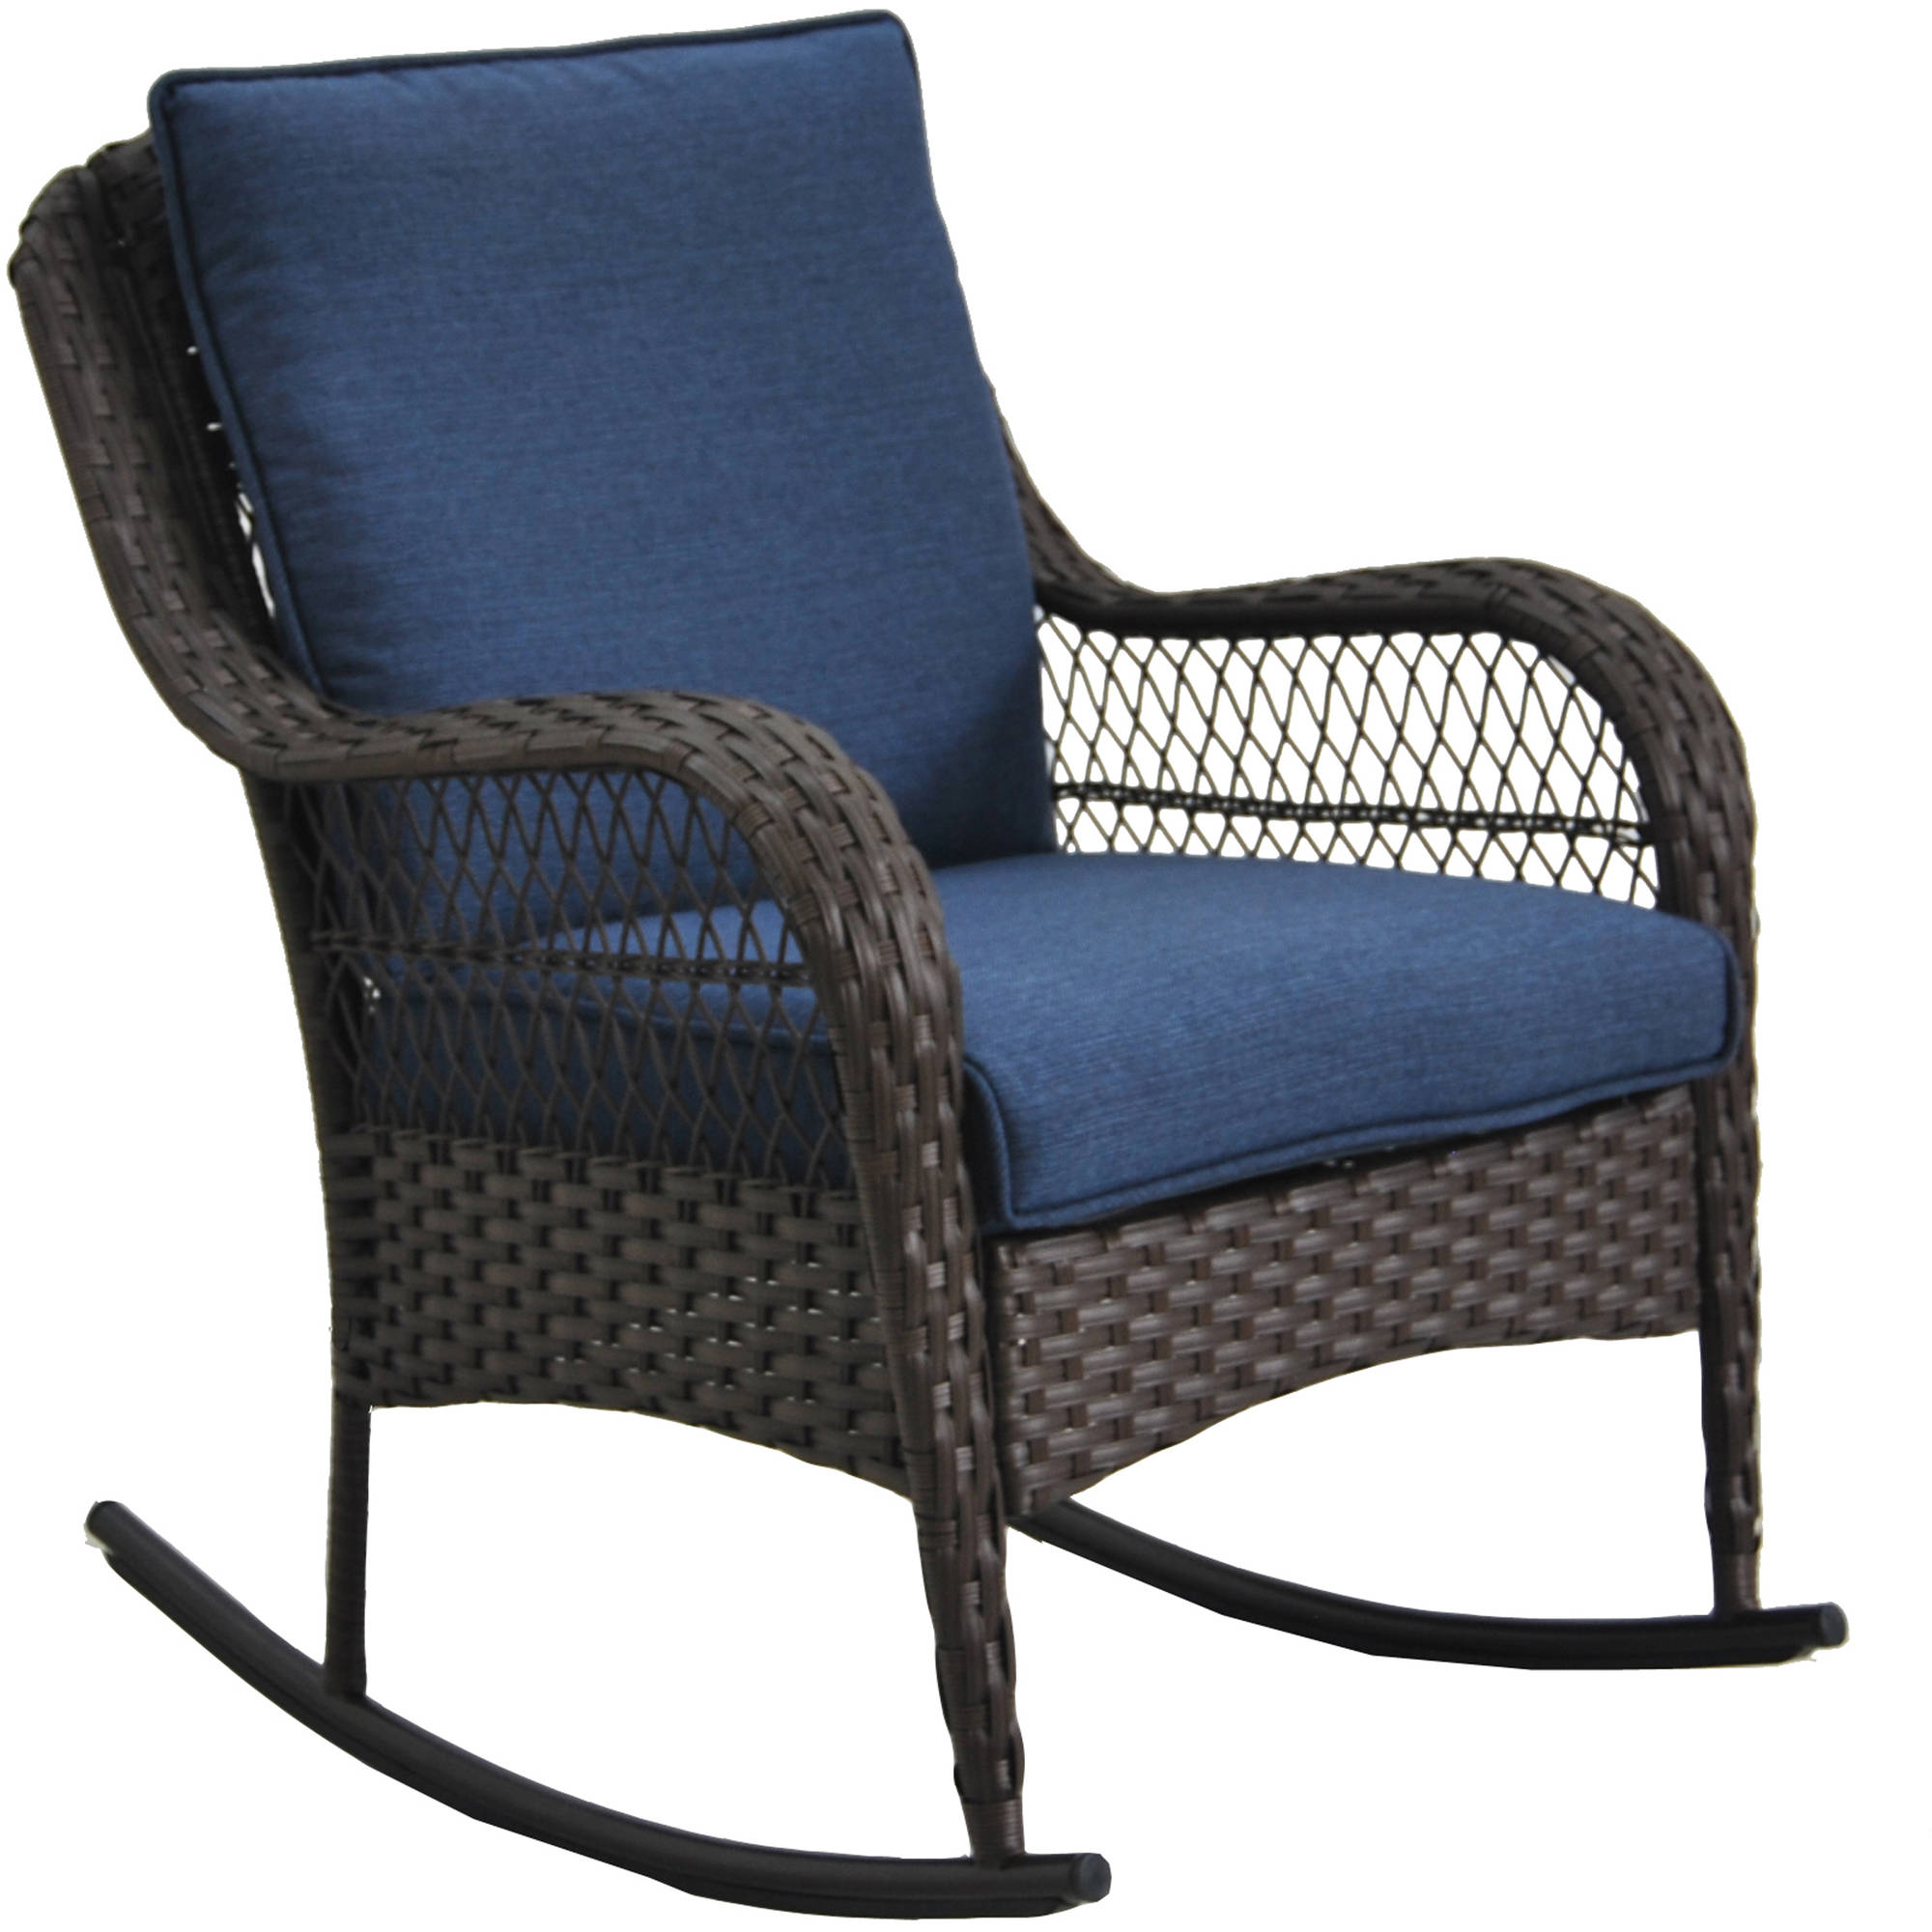 Better Homes U0026 Gardens Colebrook Outdoor Rocking Chair   Walmart.com